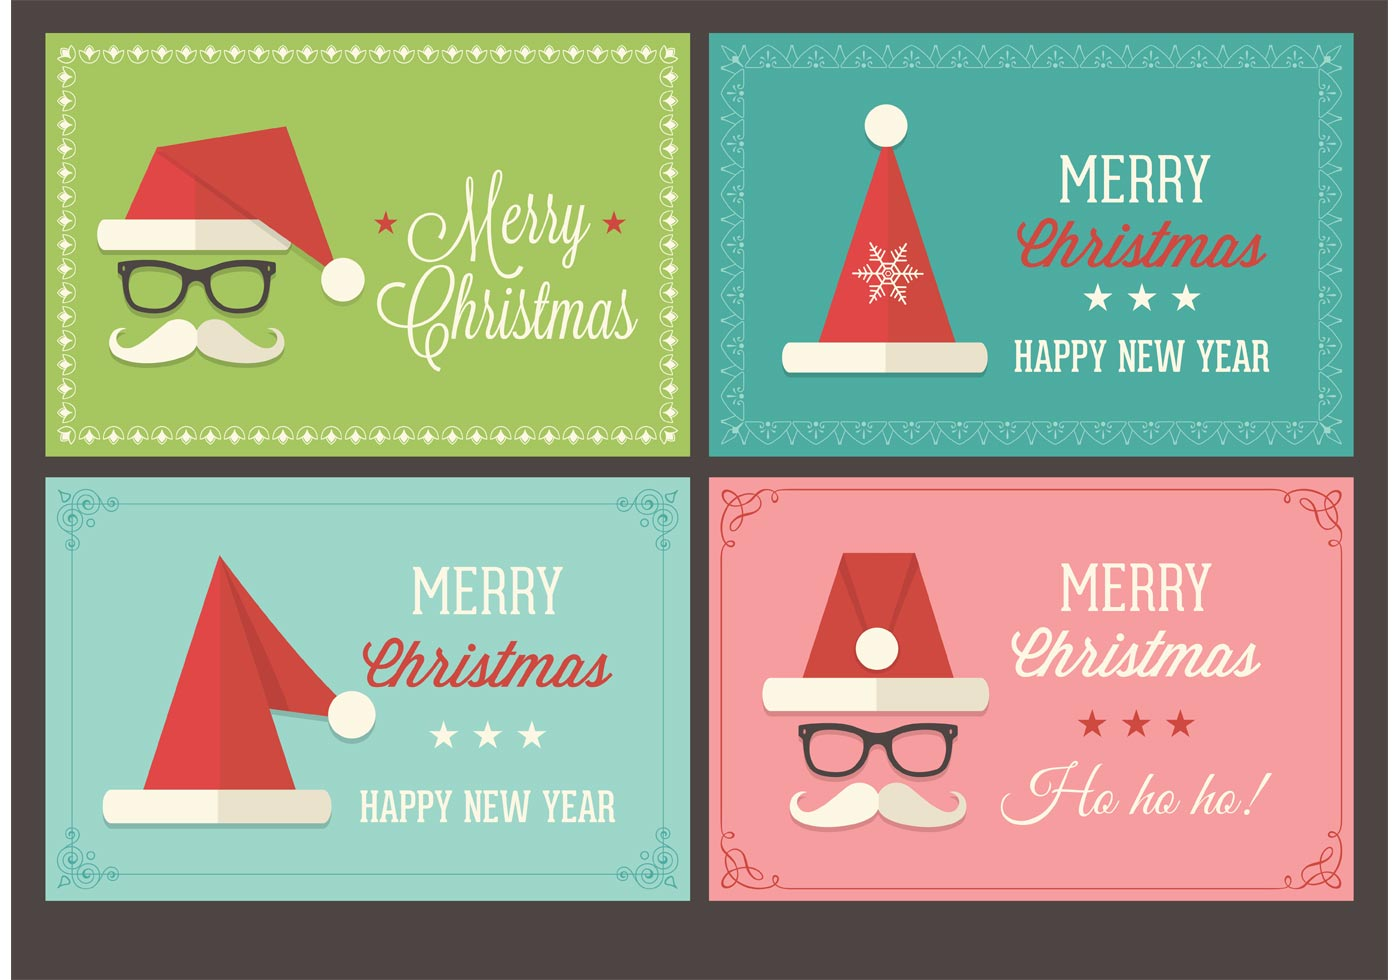 xmas vector graphics - smartaddons